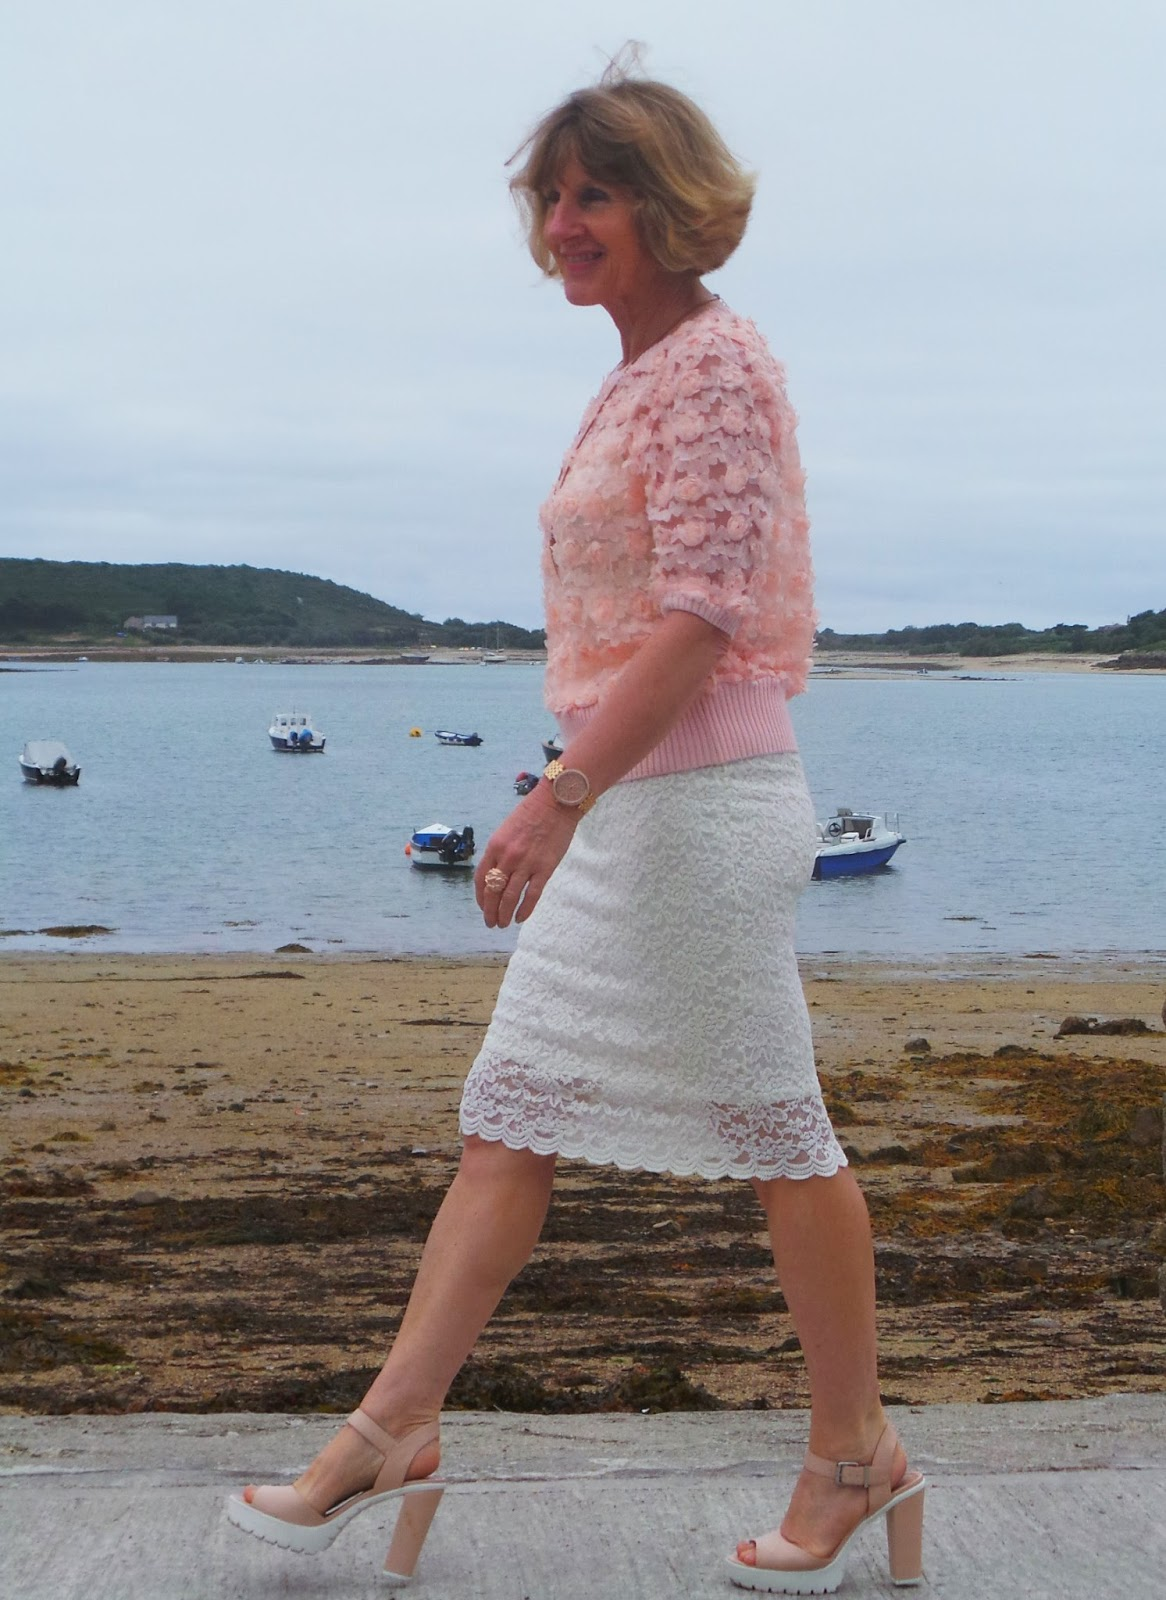 Anna Parkes from Annas Island Style in the 5 Over 50 Challenge Amazing Lace